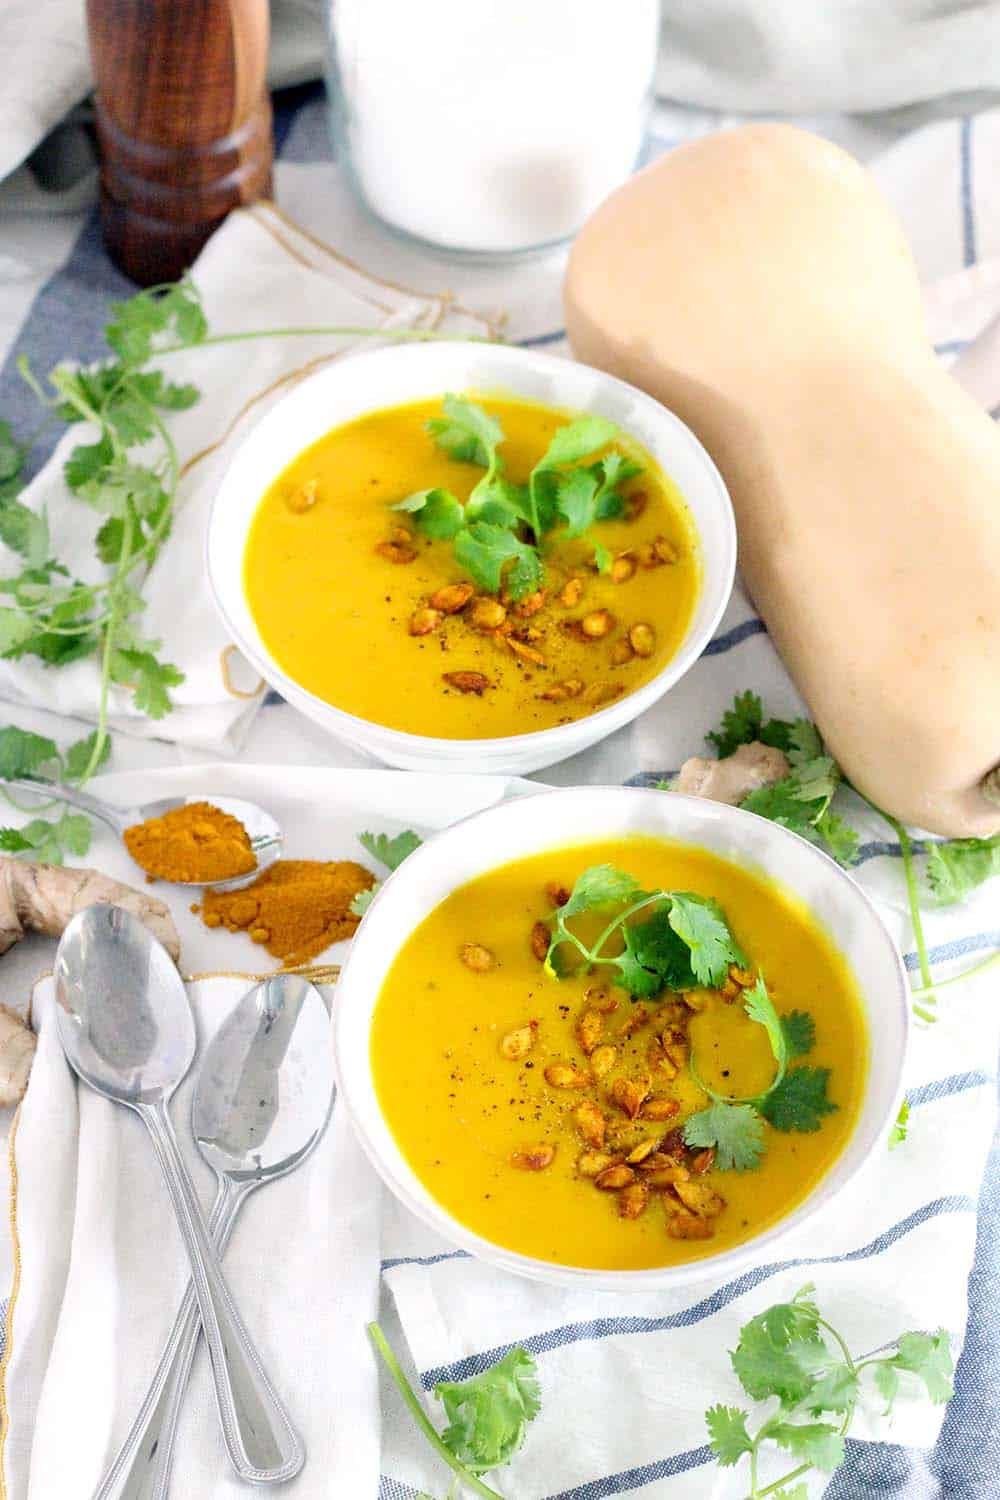 This Ginger Turmeric Butternut Squash Soup is full of healing, healthy ingredients. It's warm, deliciously bright, vegan, low carb, Paleo, and Whole30 compliant!